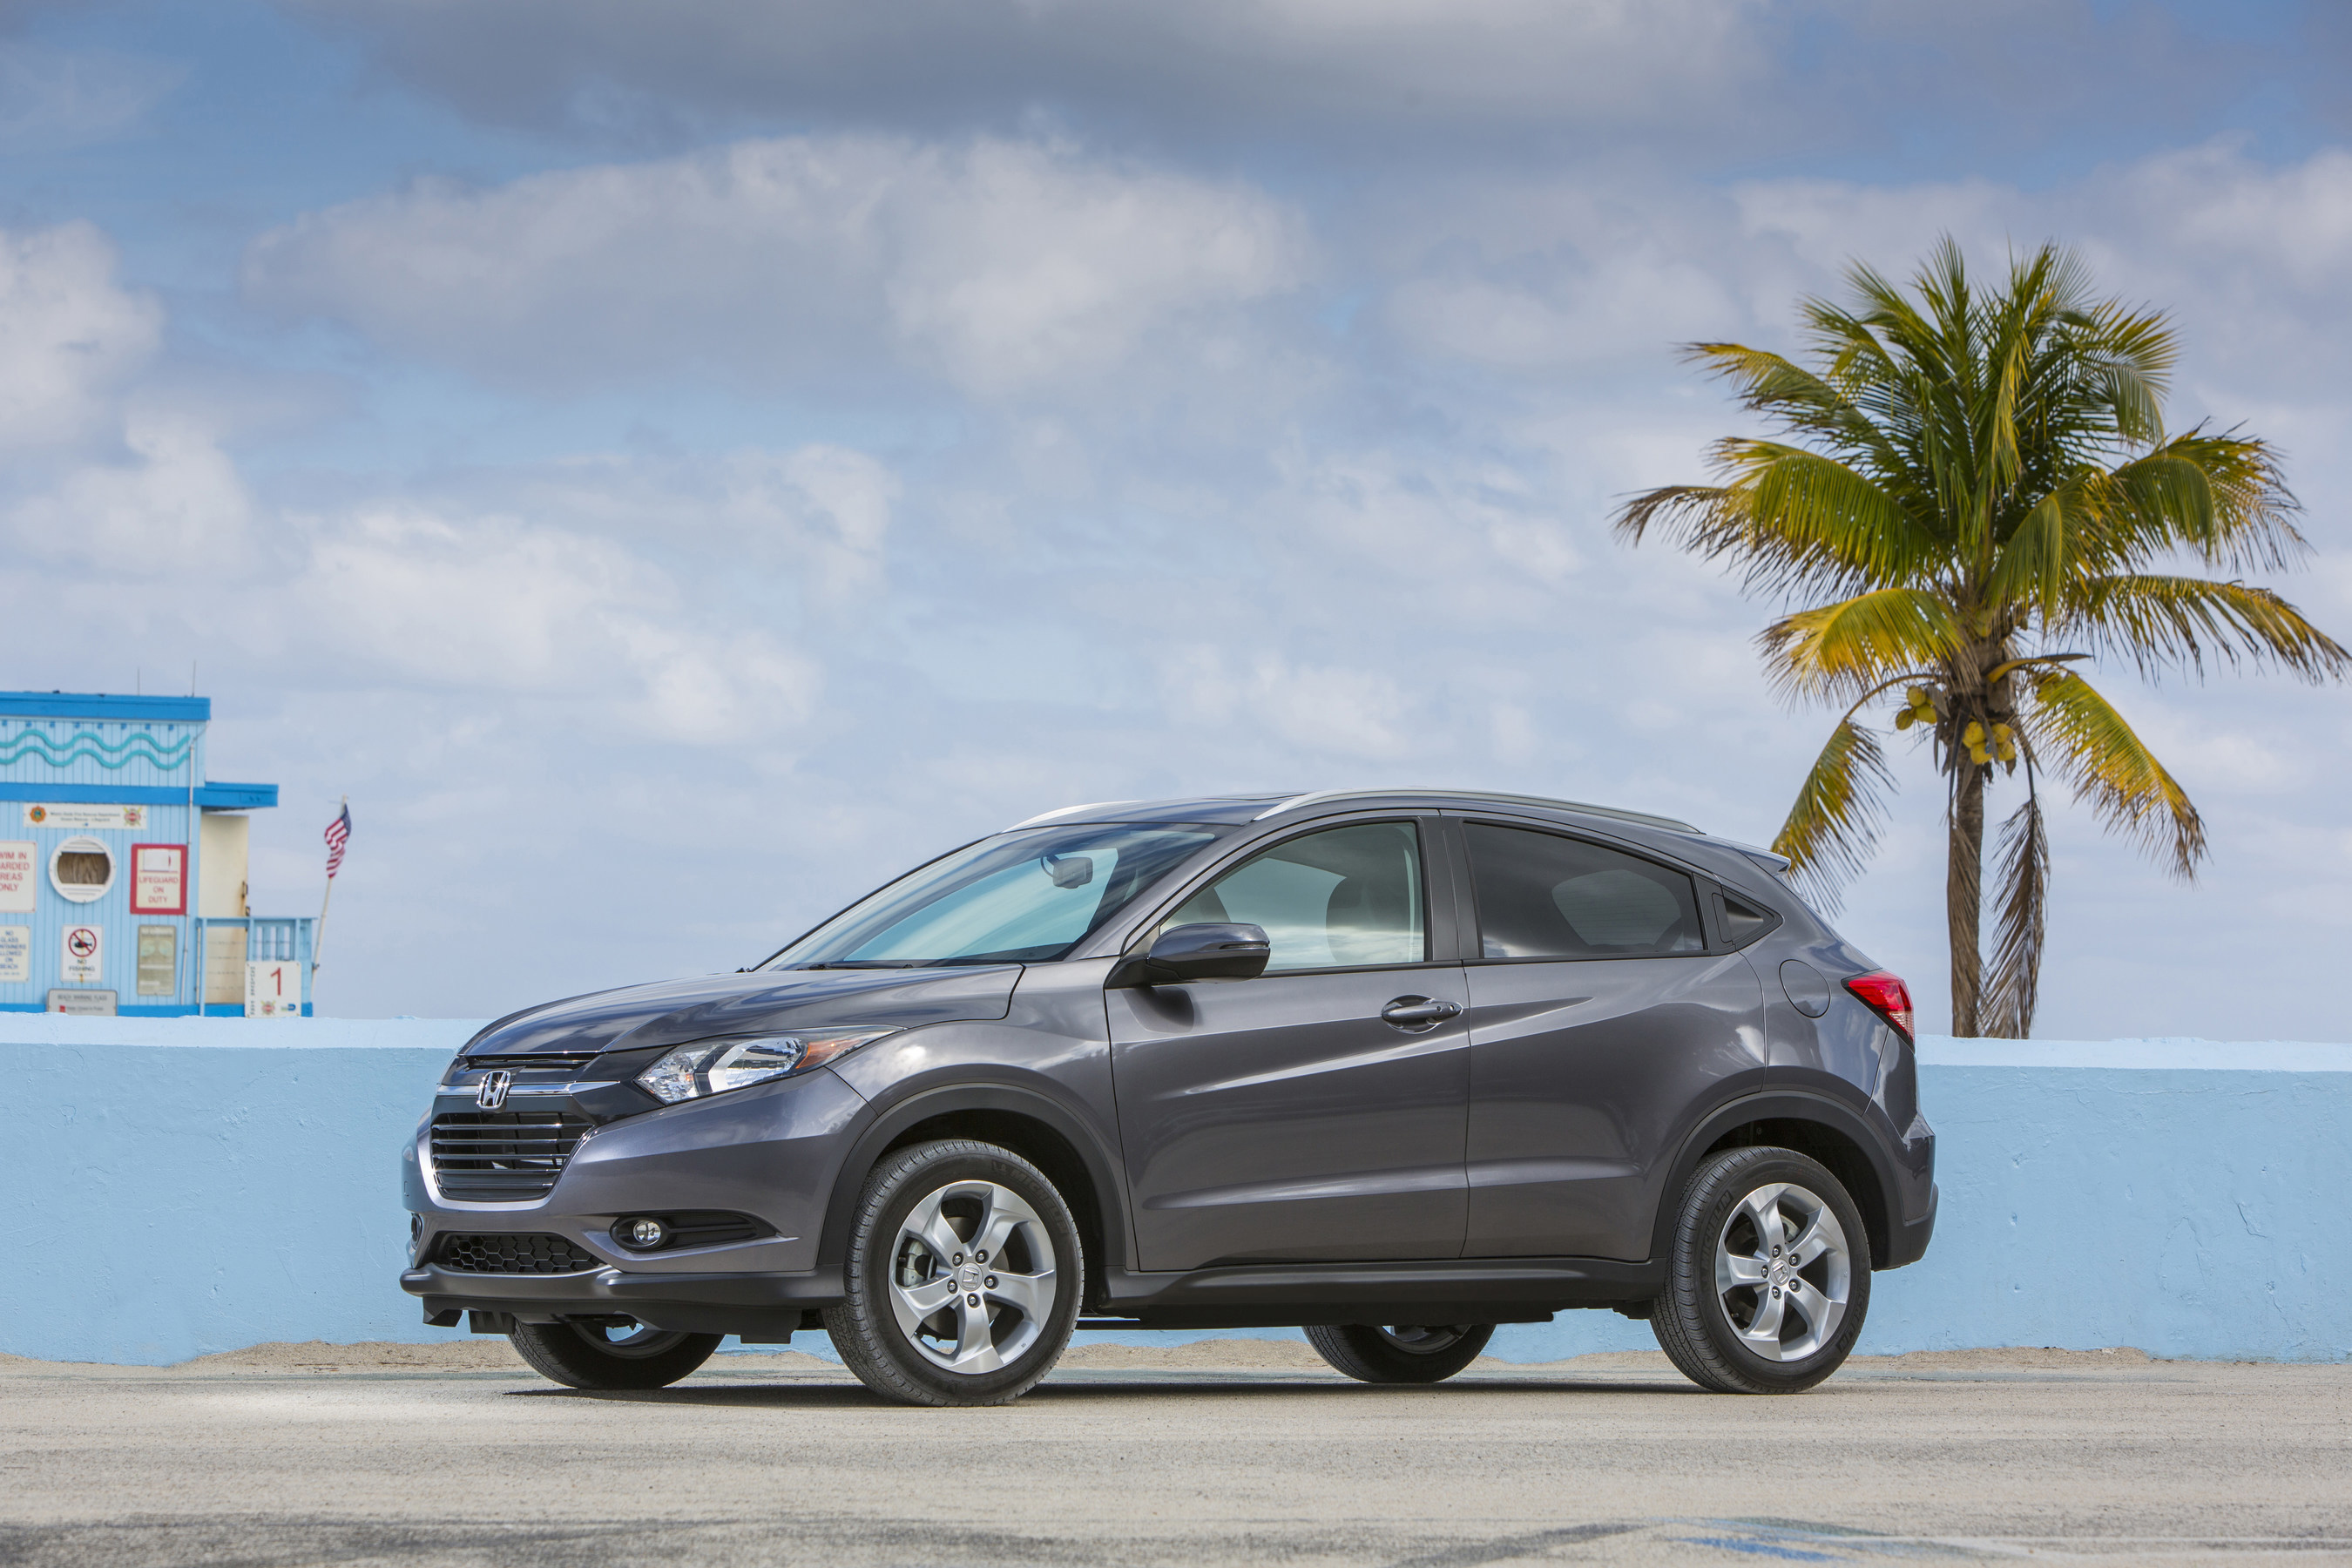 The Uniquely Personal and Functional 2016 Honda HR-V Goes On Sale May 15 Bringing a Shot of Energy to Growing Entry Crossover Market